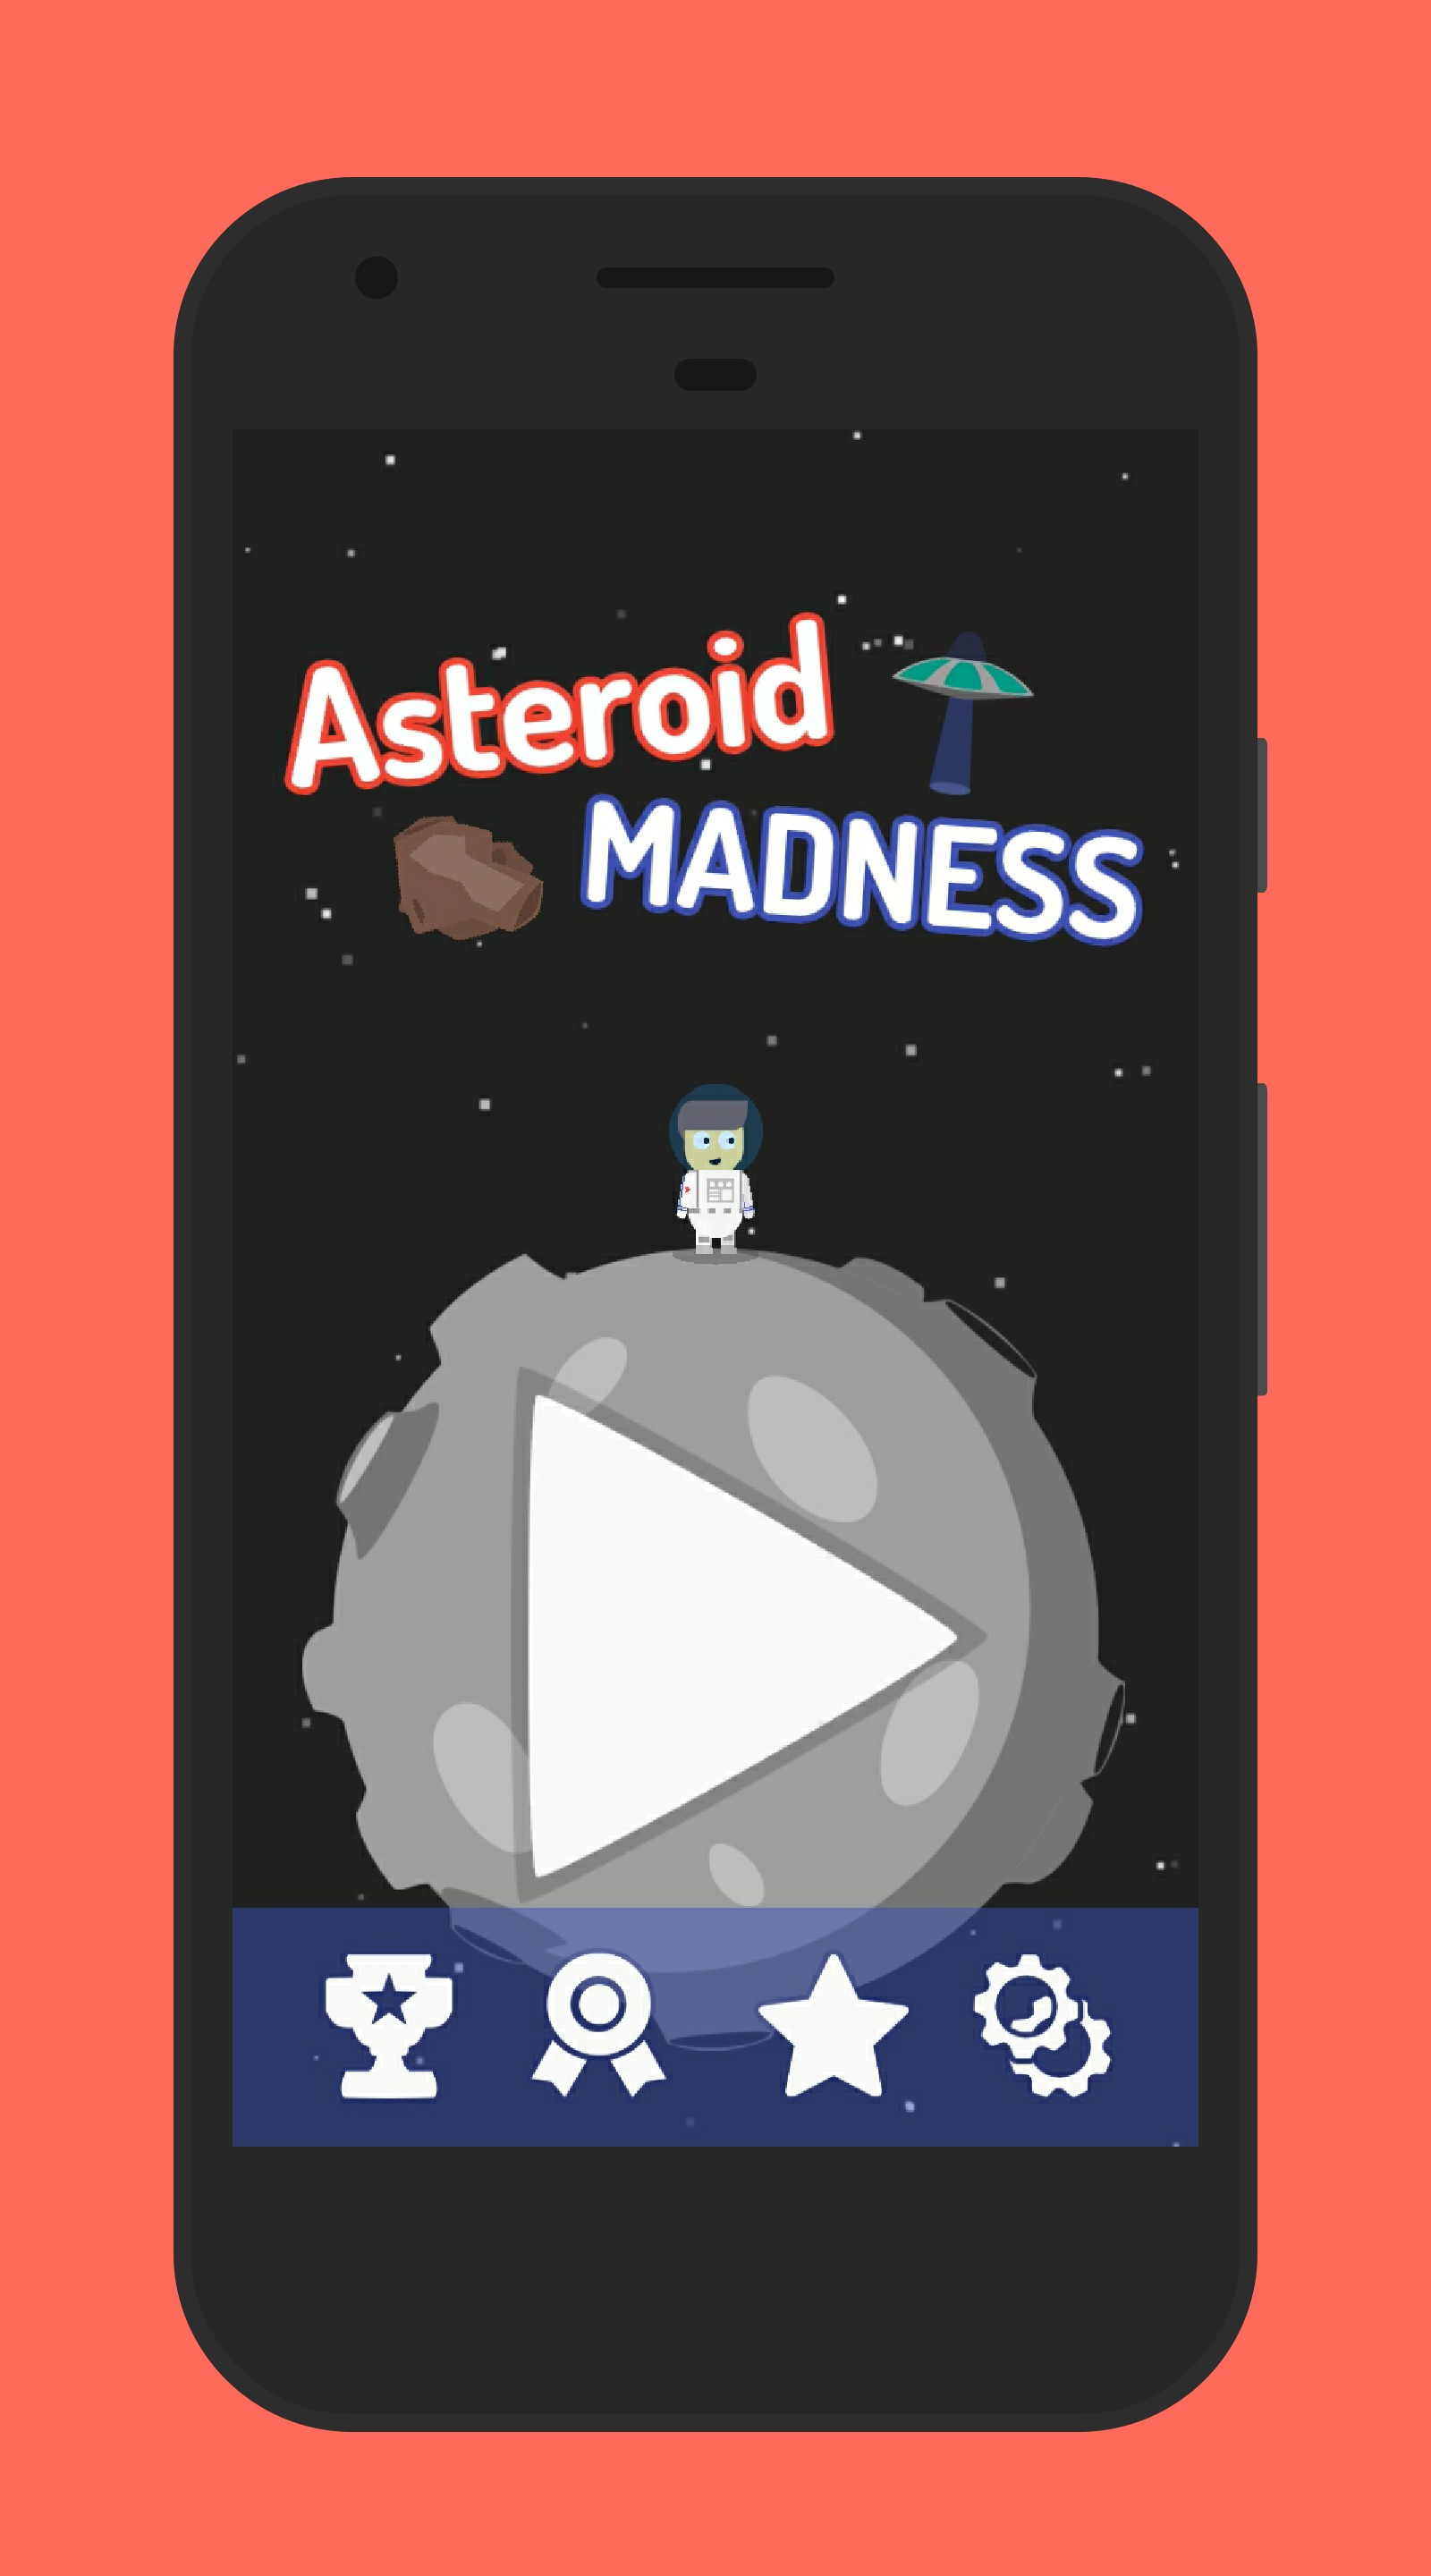 Asteroid Madness